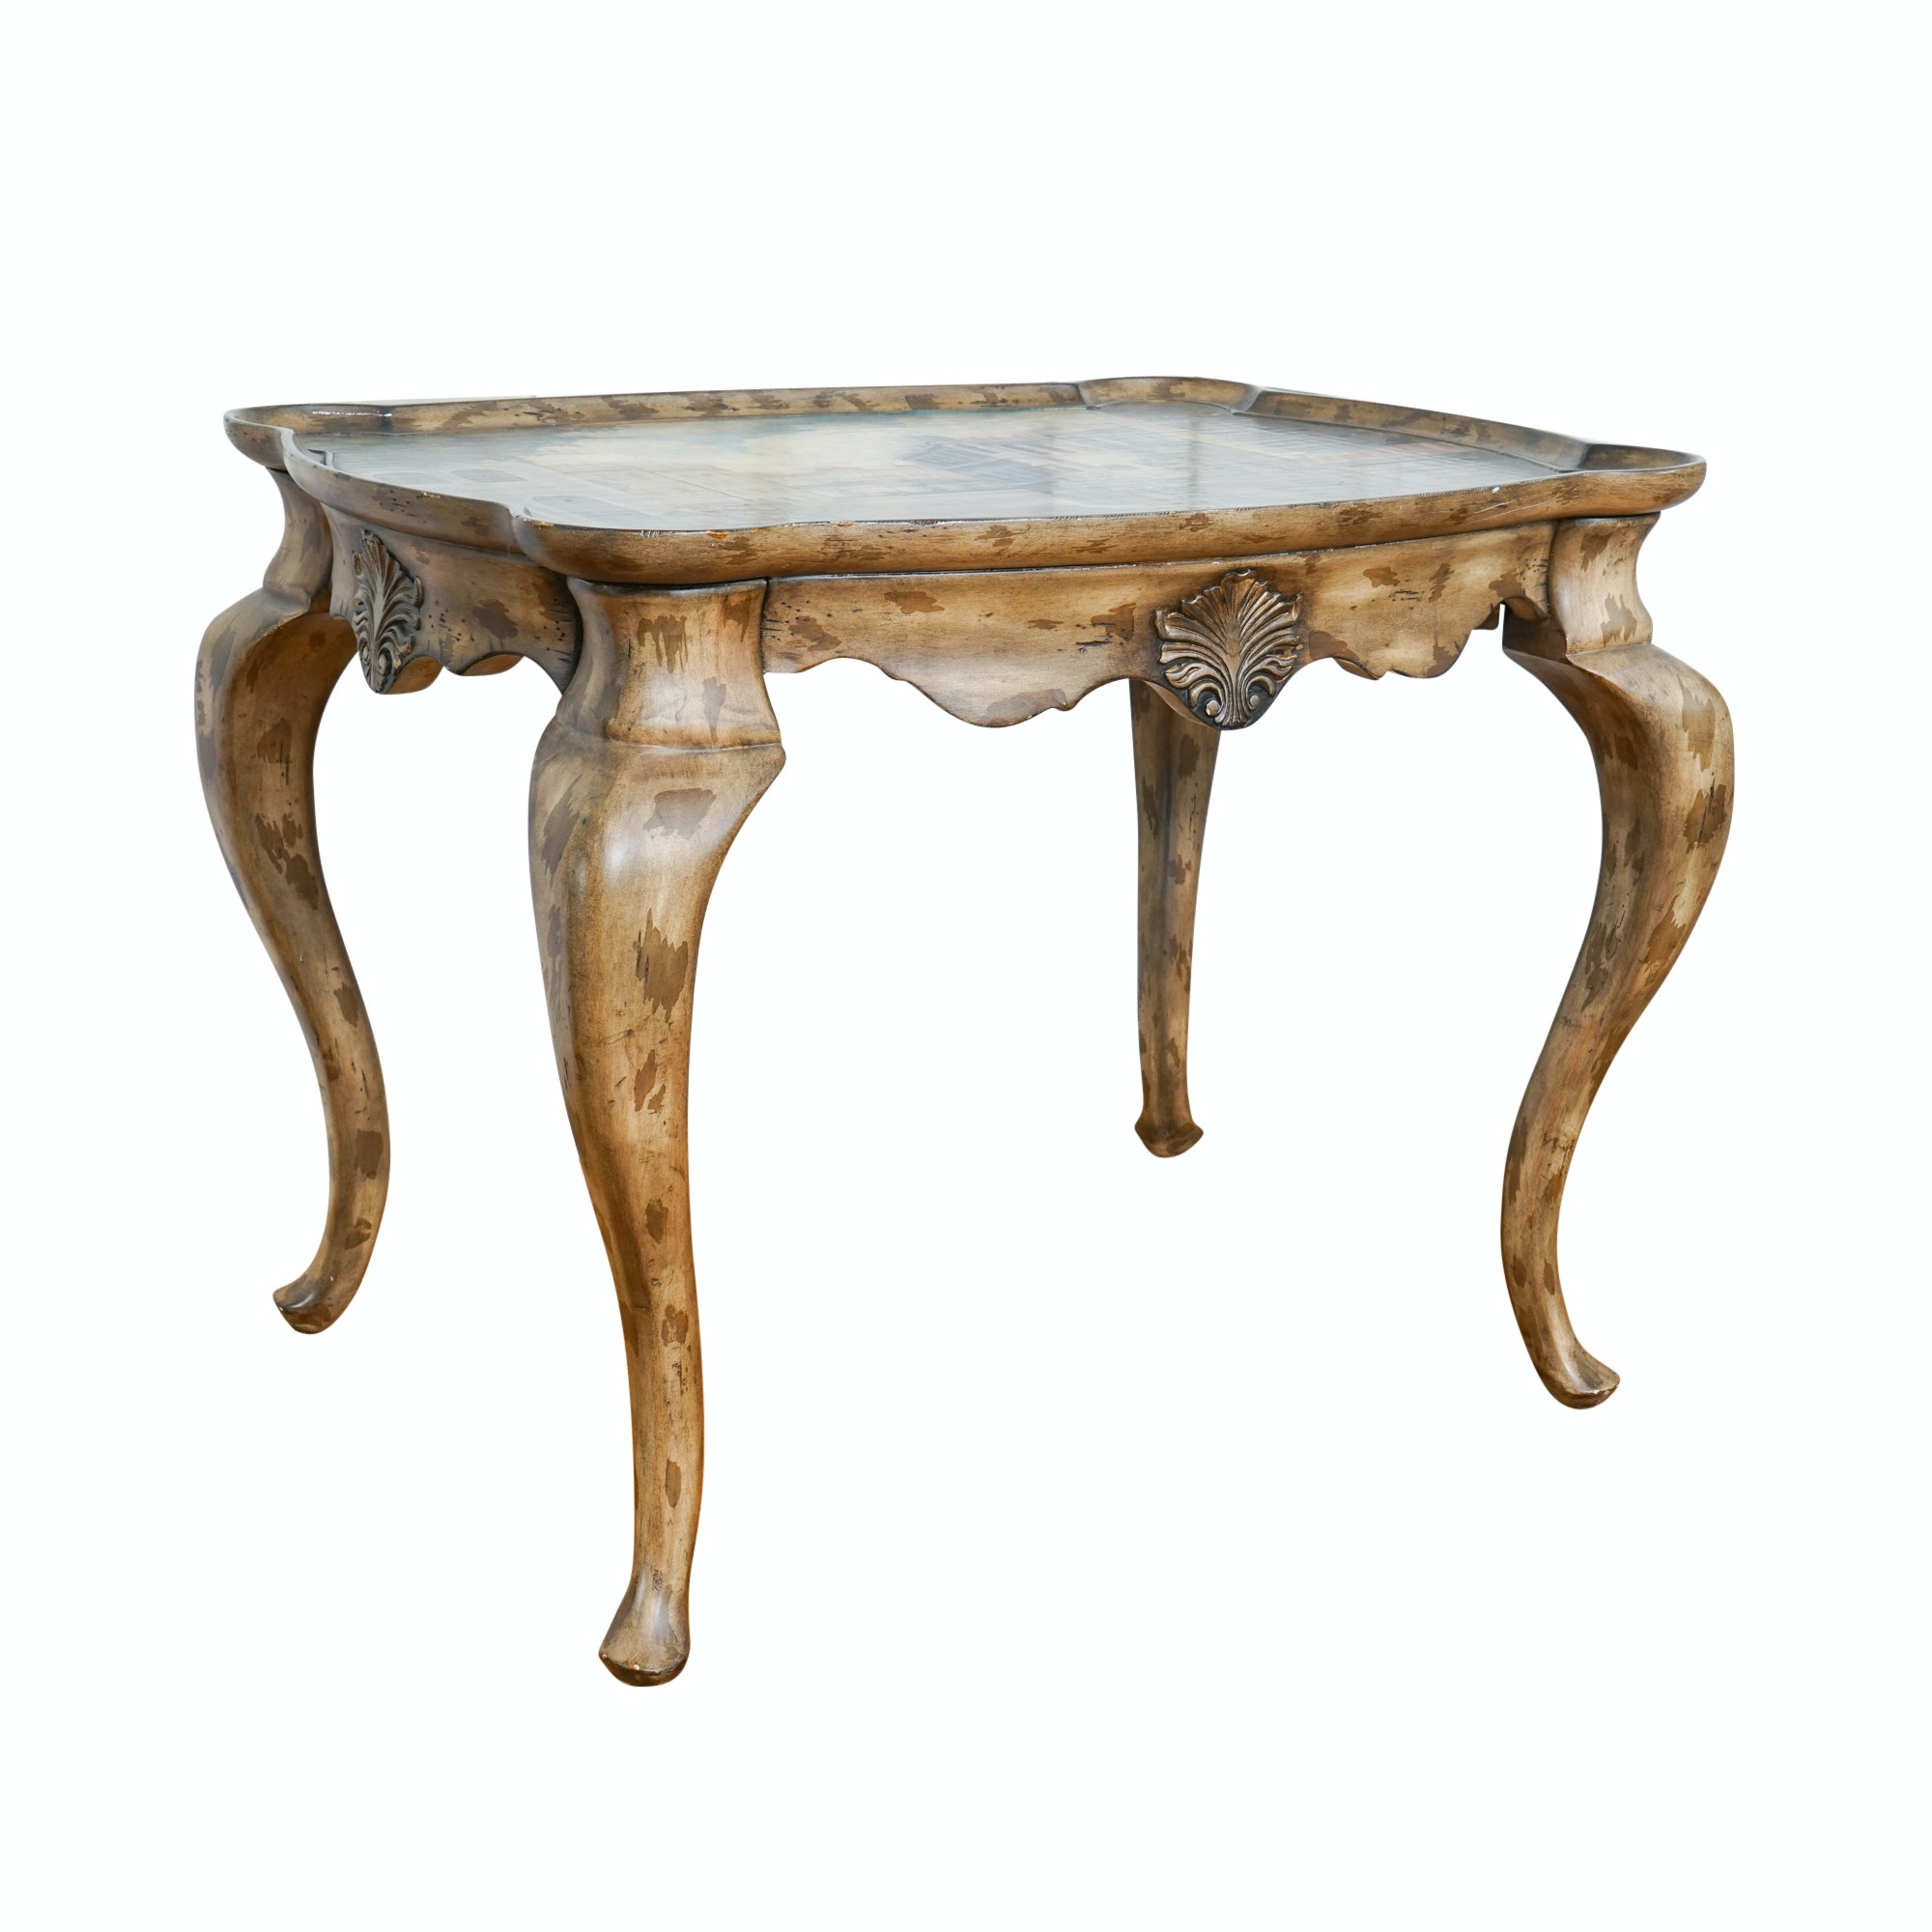 Vintage French Provincial Style Painted Accent Table